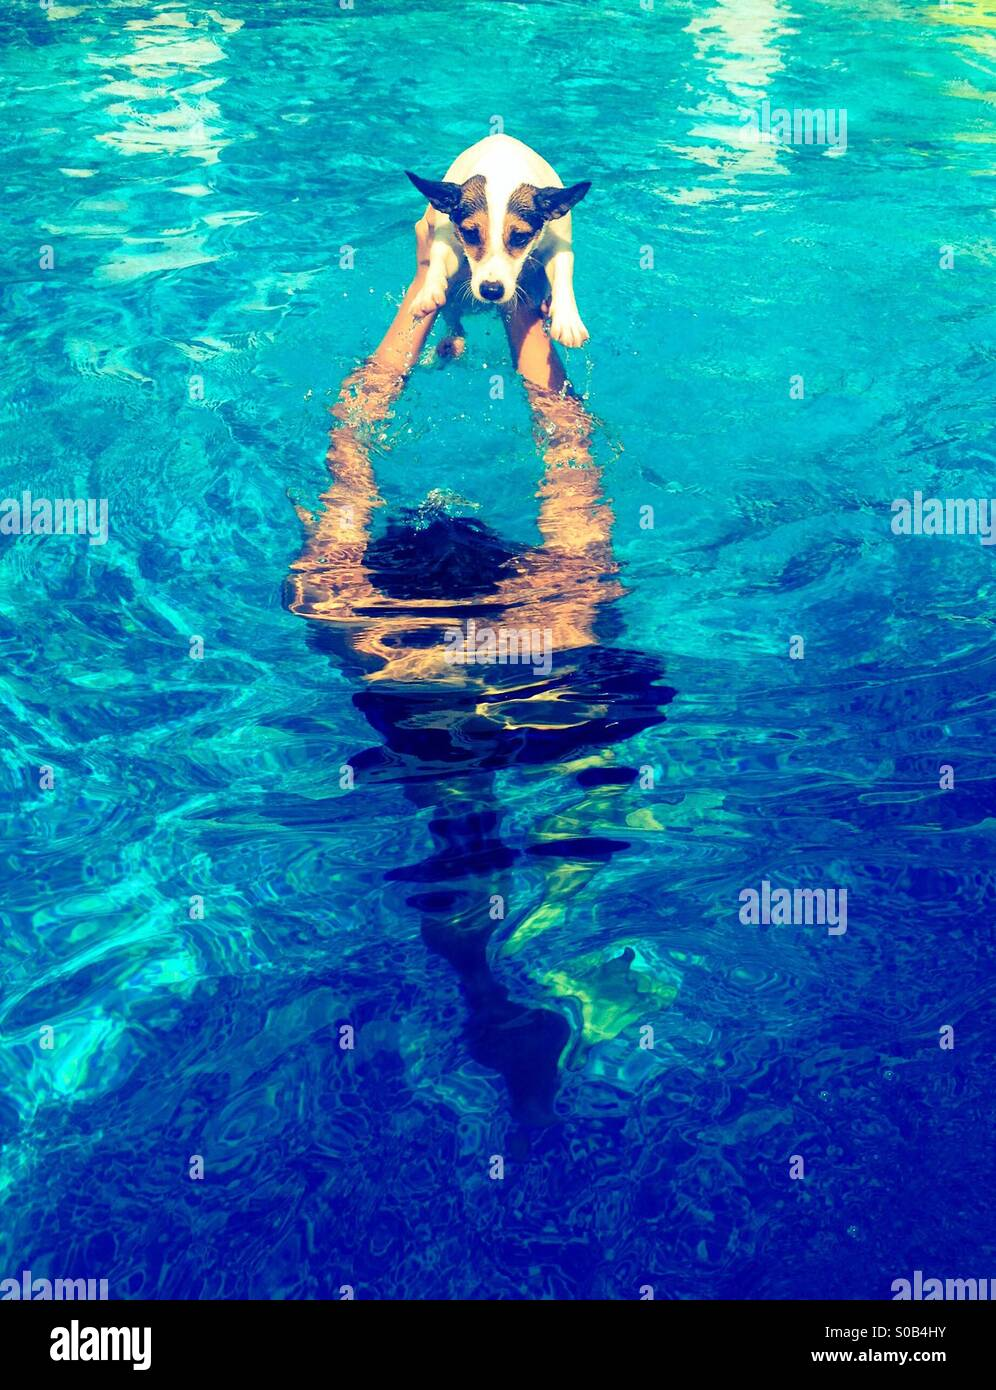 Water play; teenage boy playing in the swimming pool with his dog. - Stock Image